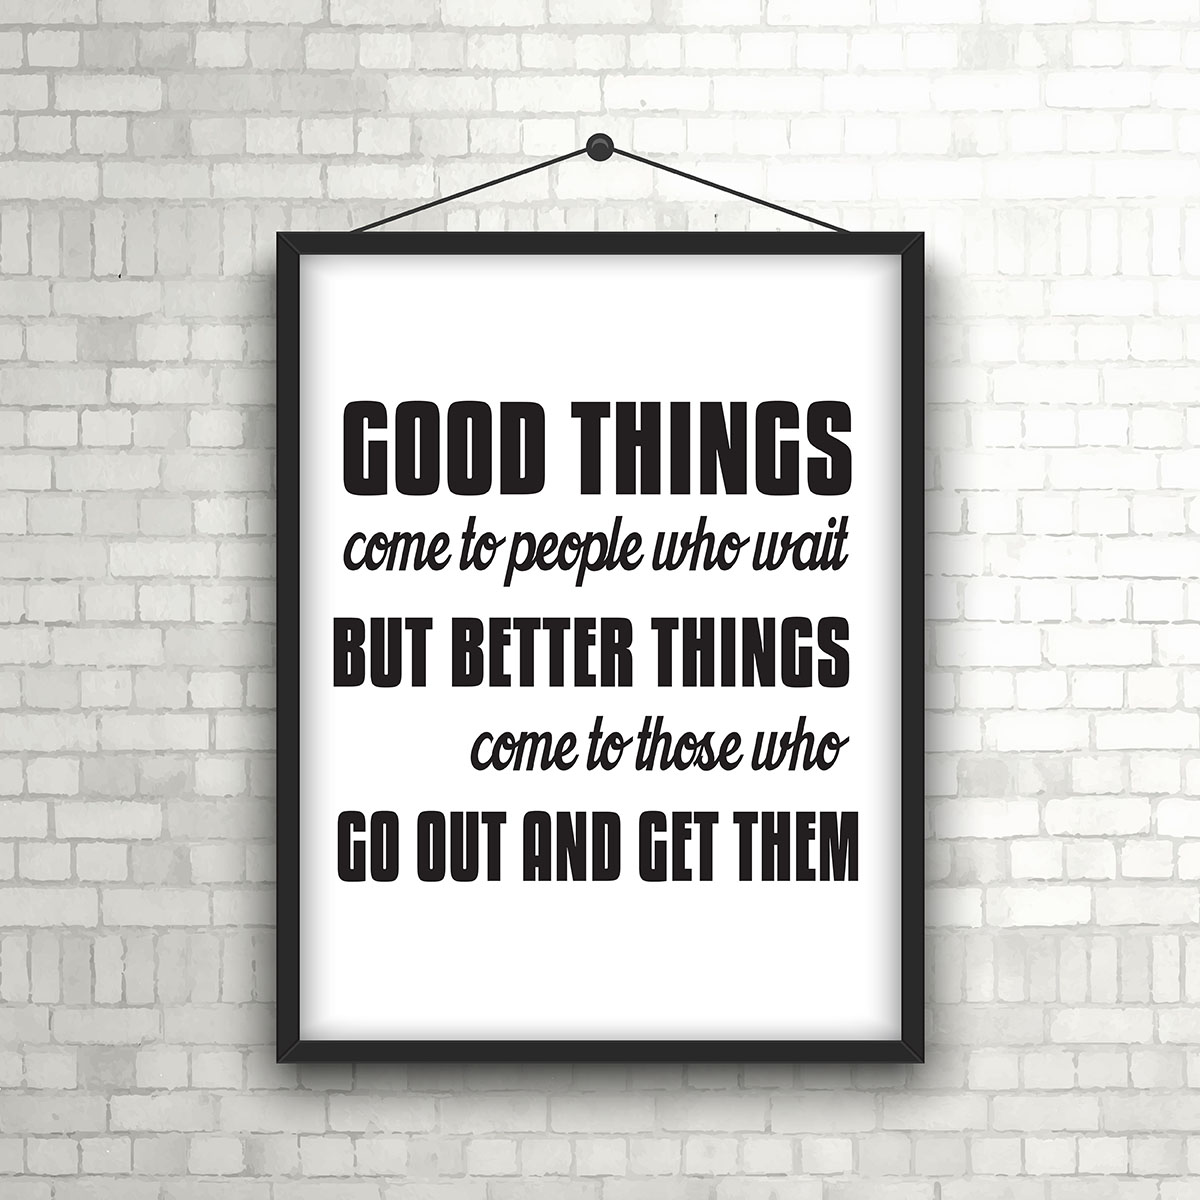 Inspirational Quote In Picture Frame On Brick Wall